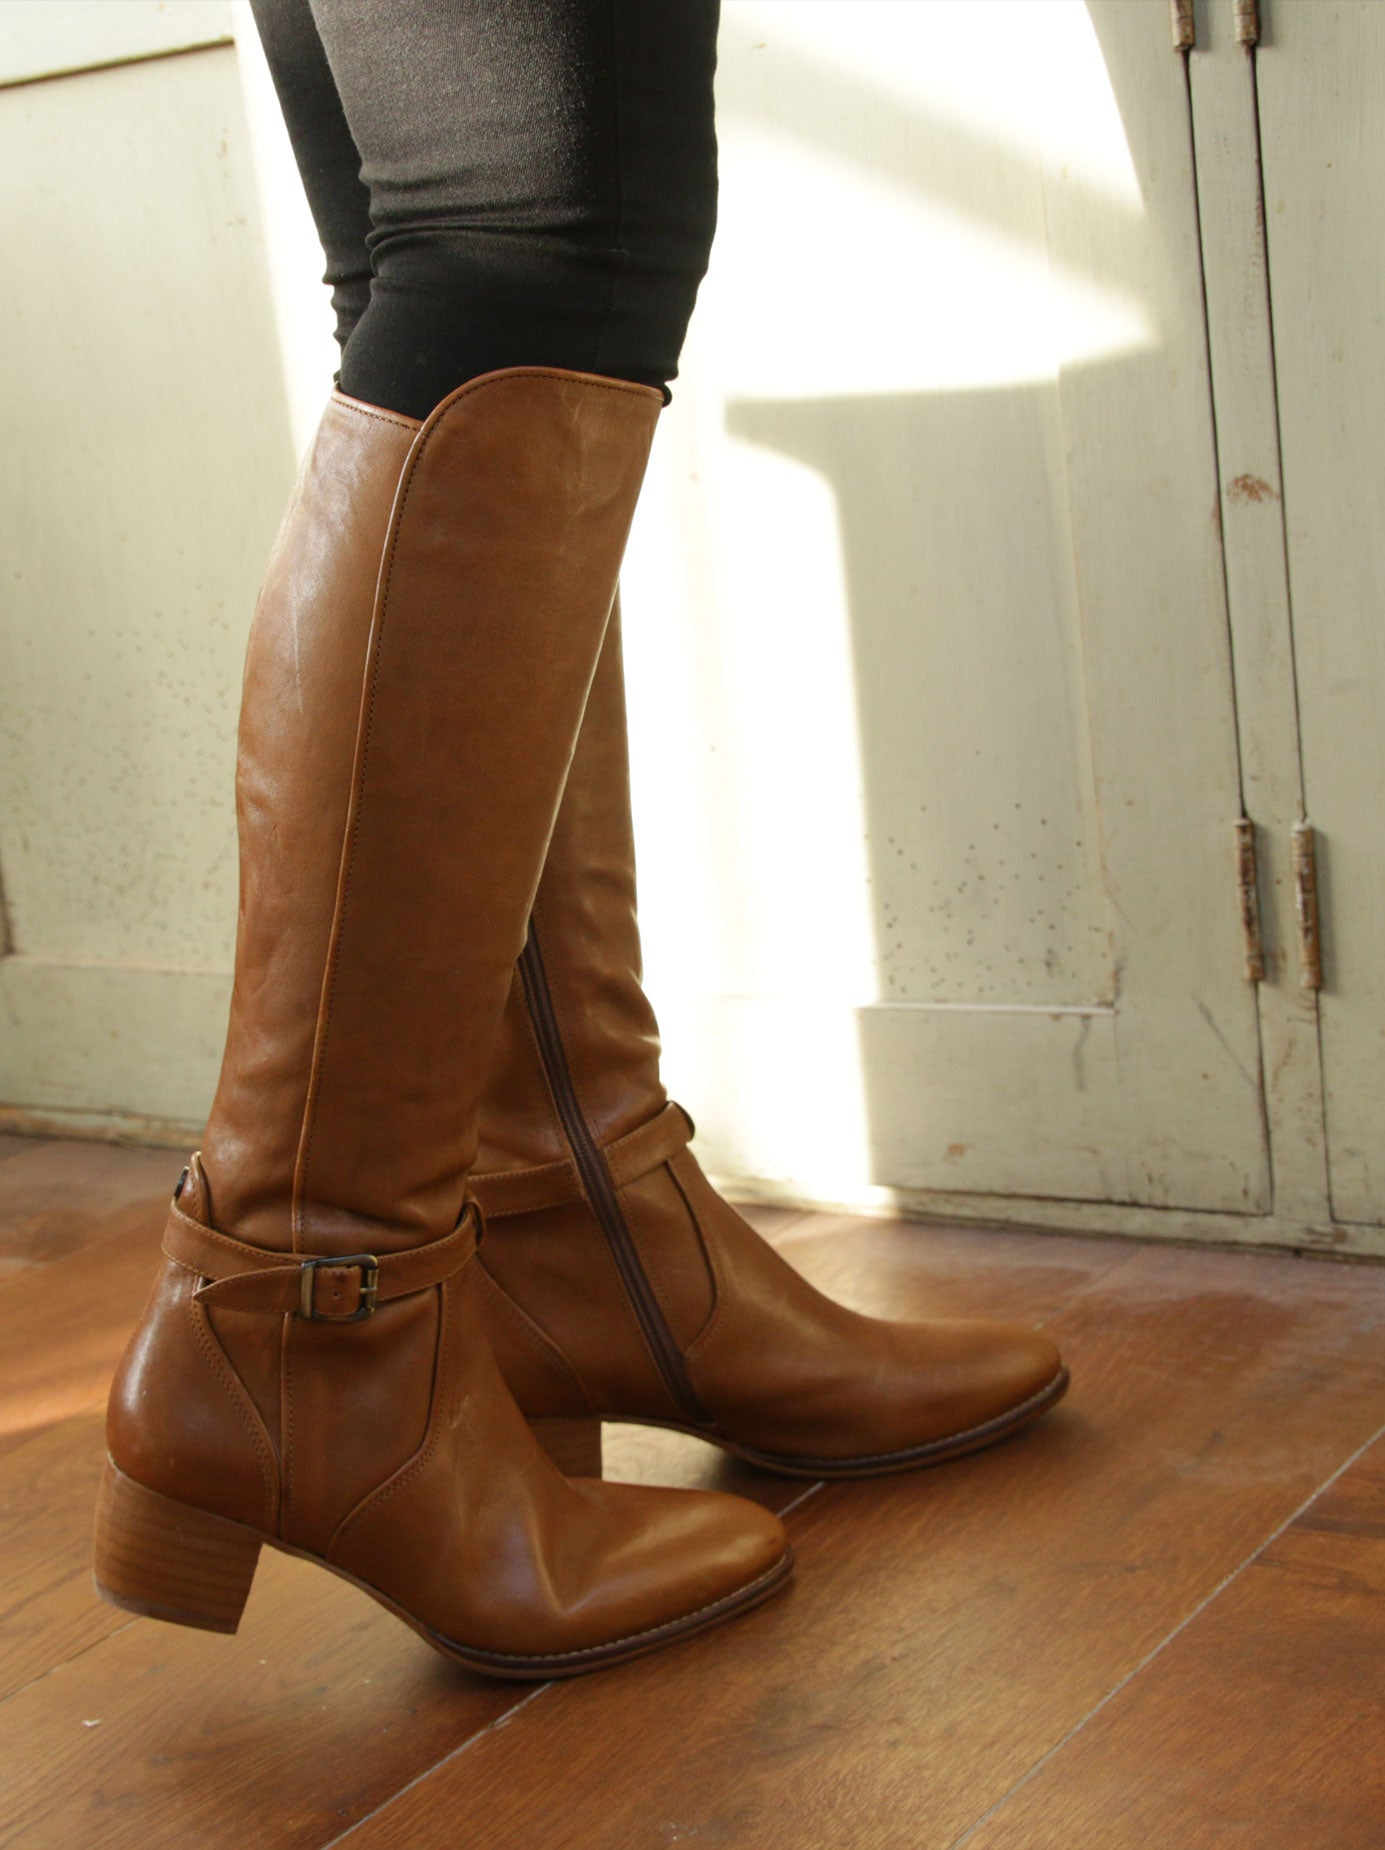 Featuring brown leather piped seams - accentuating the curves of the boot.